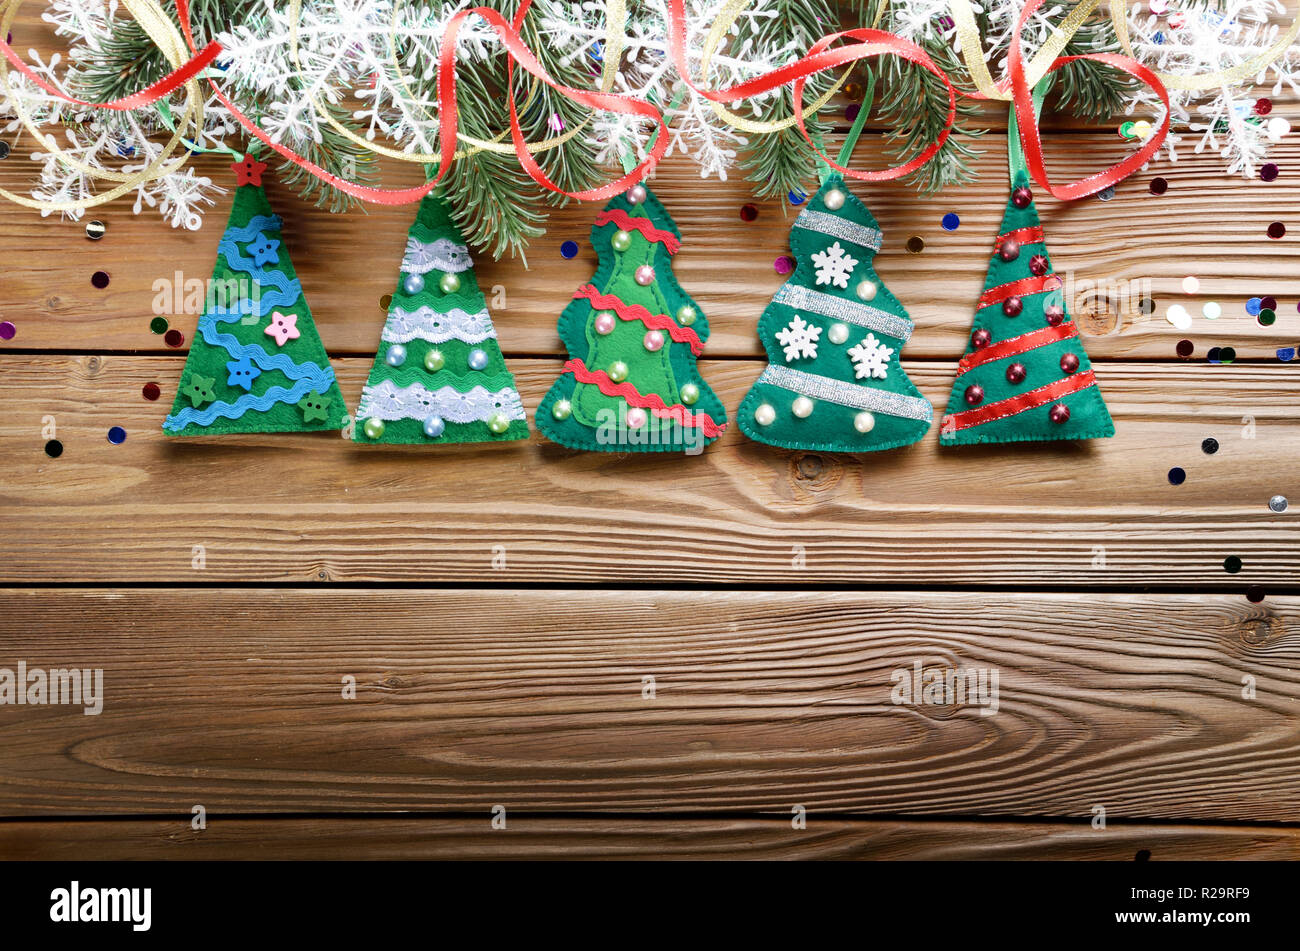 Handmade Rustic Felt Christmas Tree Decorations As Background On Wooden Table Place For Text Stock Photo Alamy